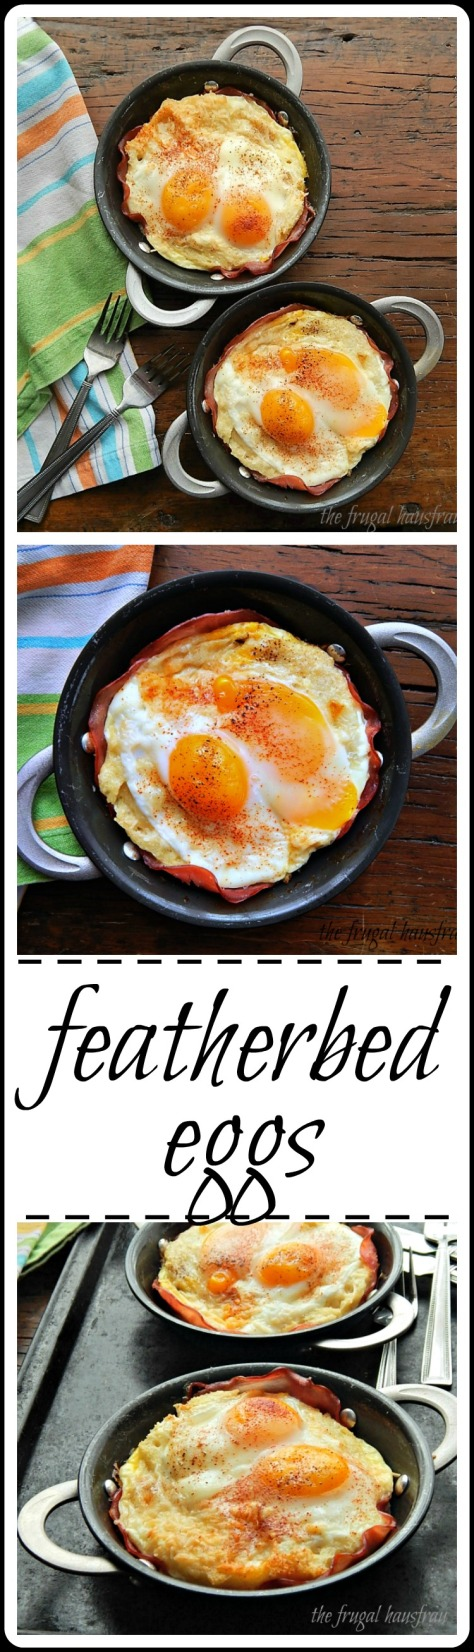 Eggs cooked over a savory, custard soaked bread layered over ham - and that ham has such crispy edges!.